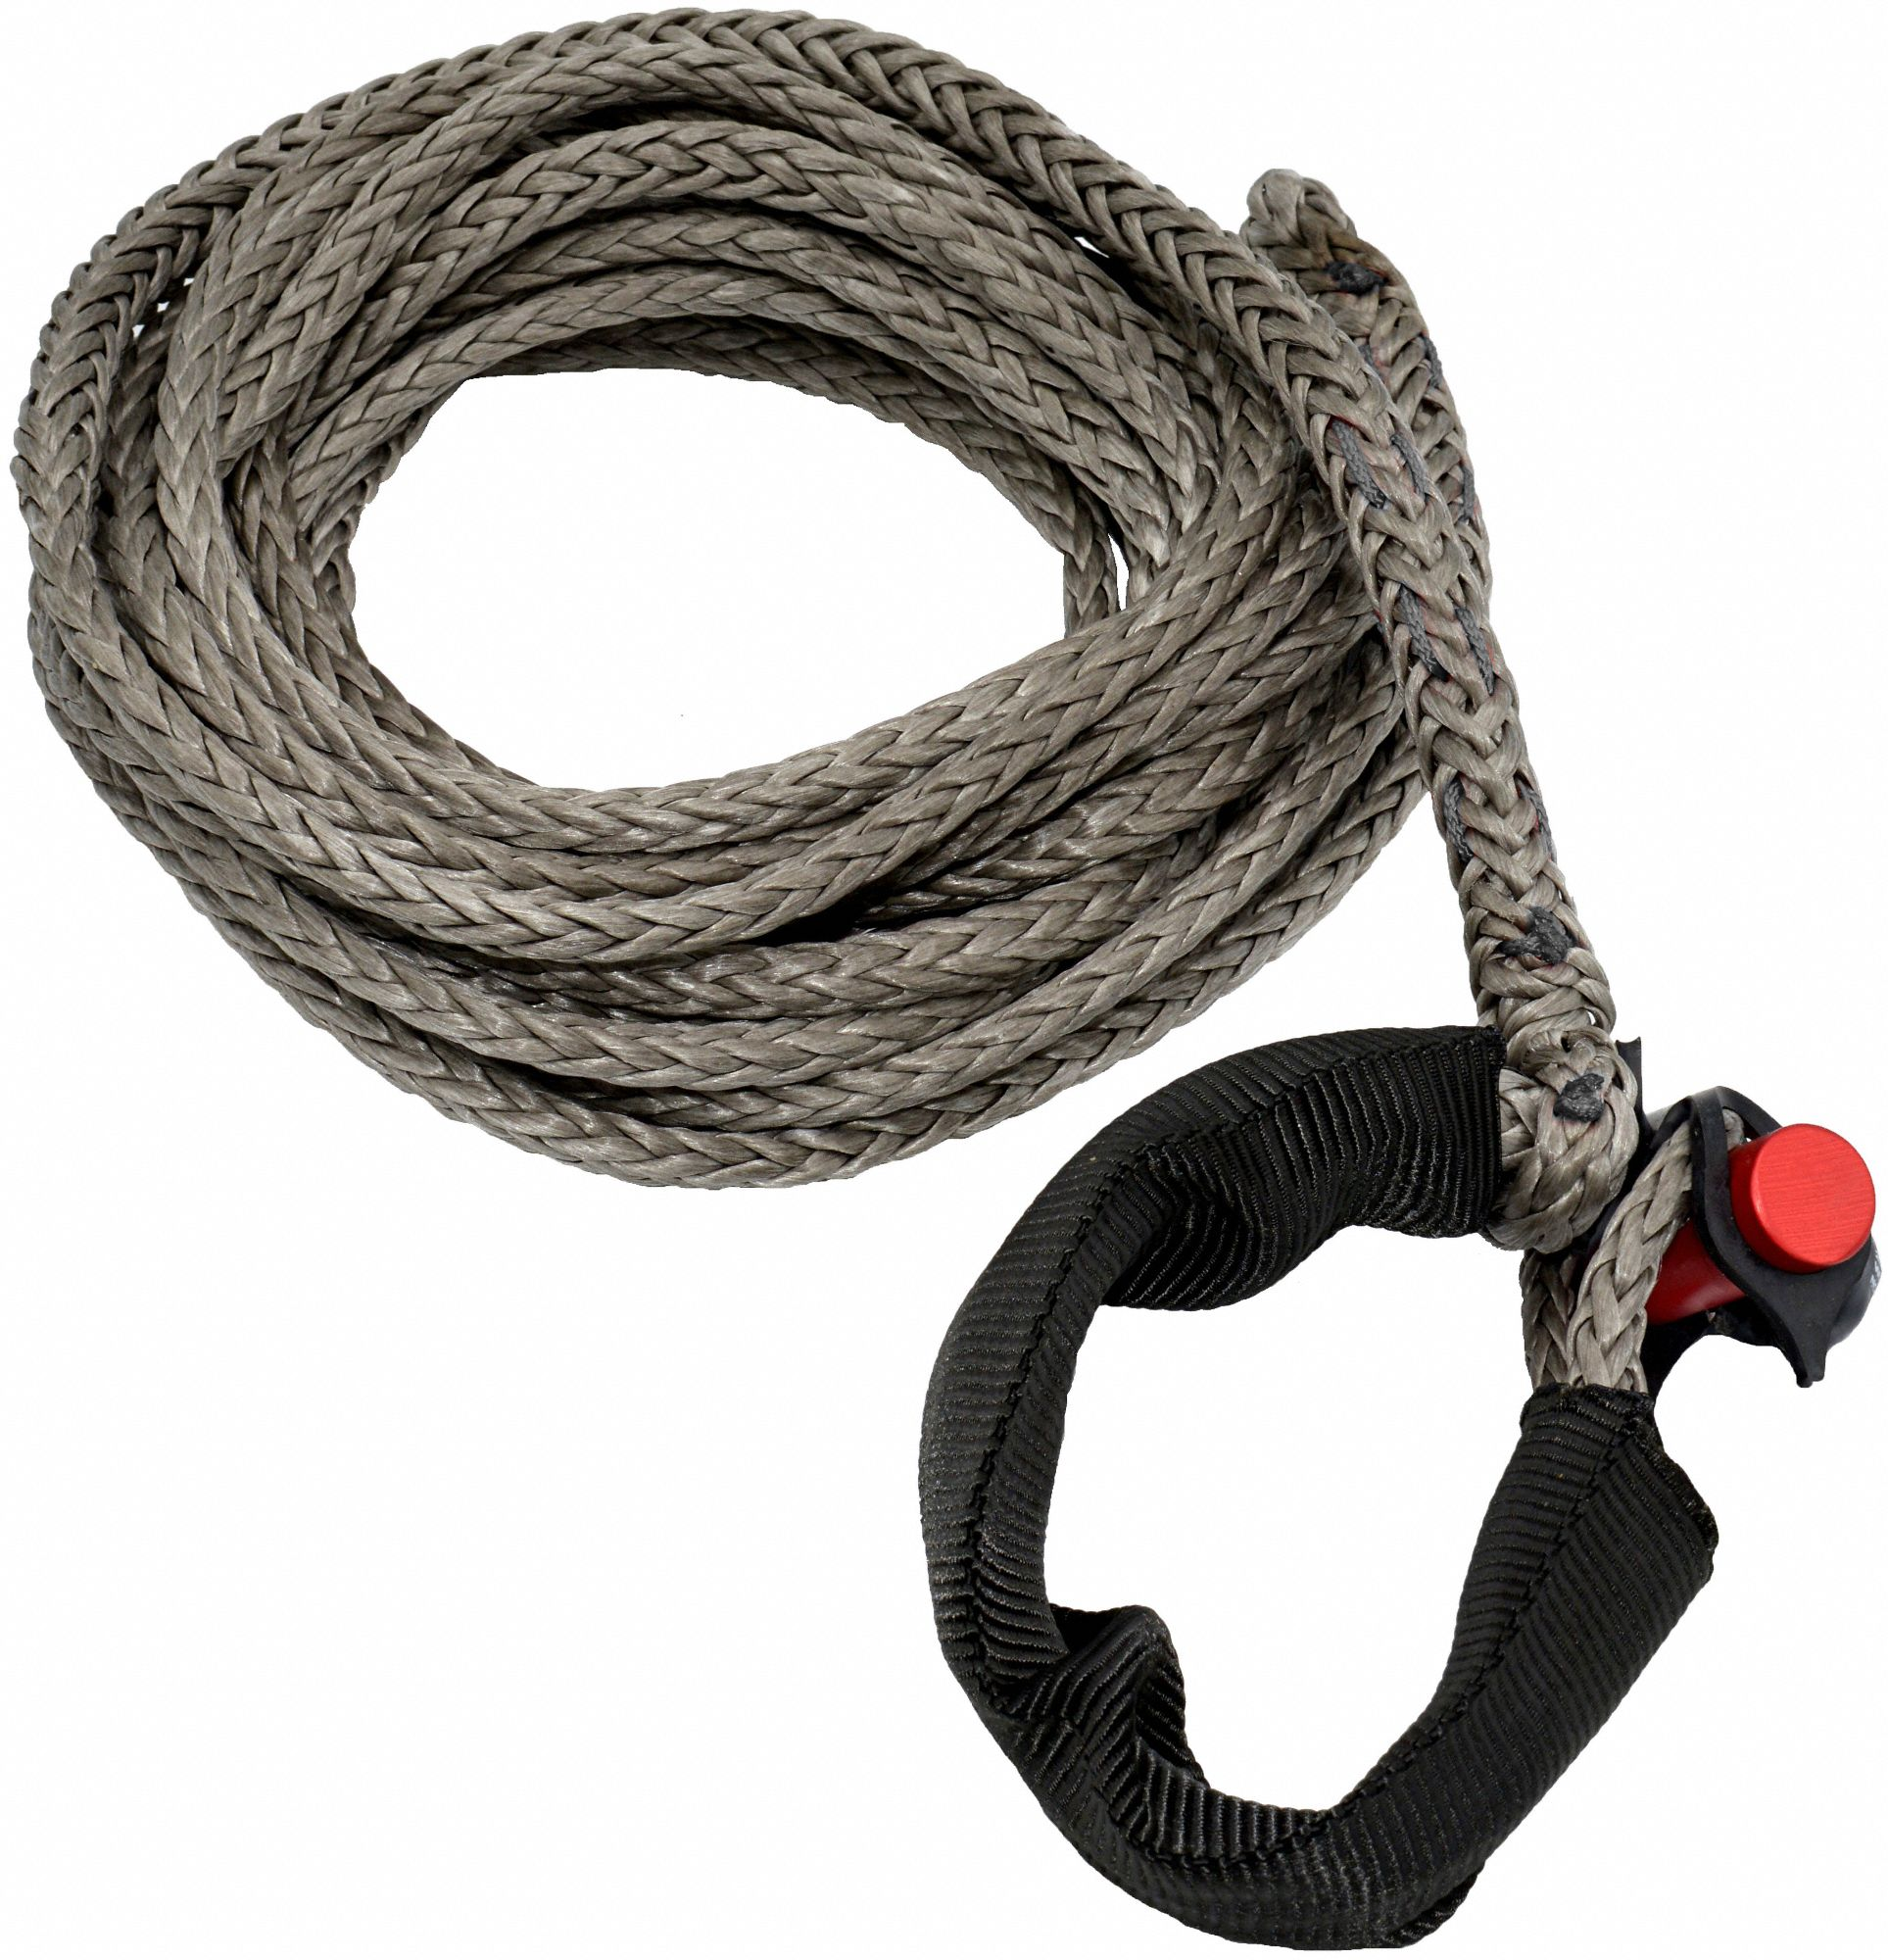 25 ft Synthetic Winch Line with 4400 lb Working Load Limit